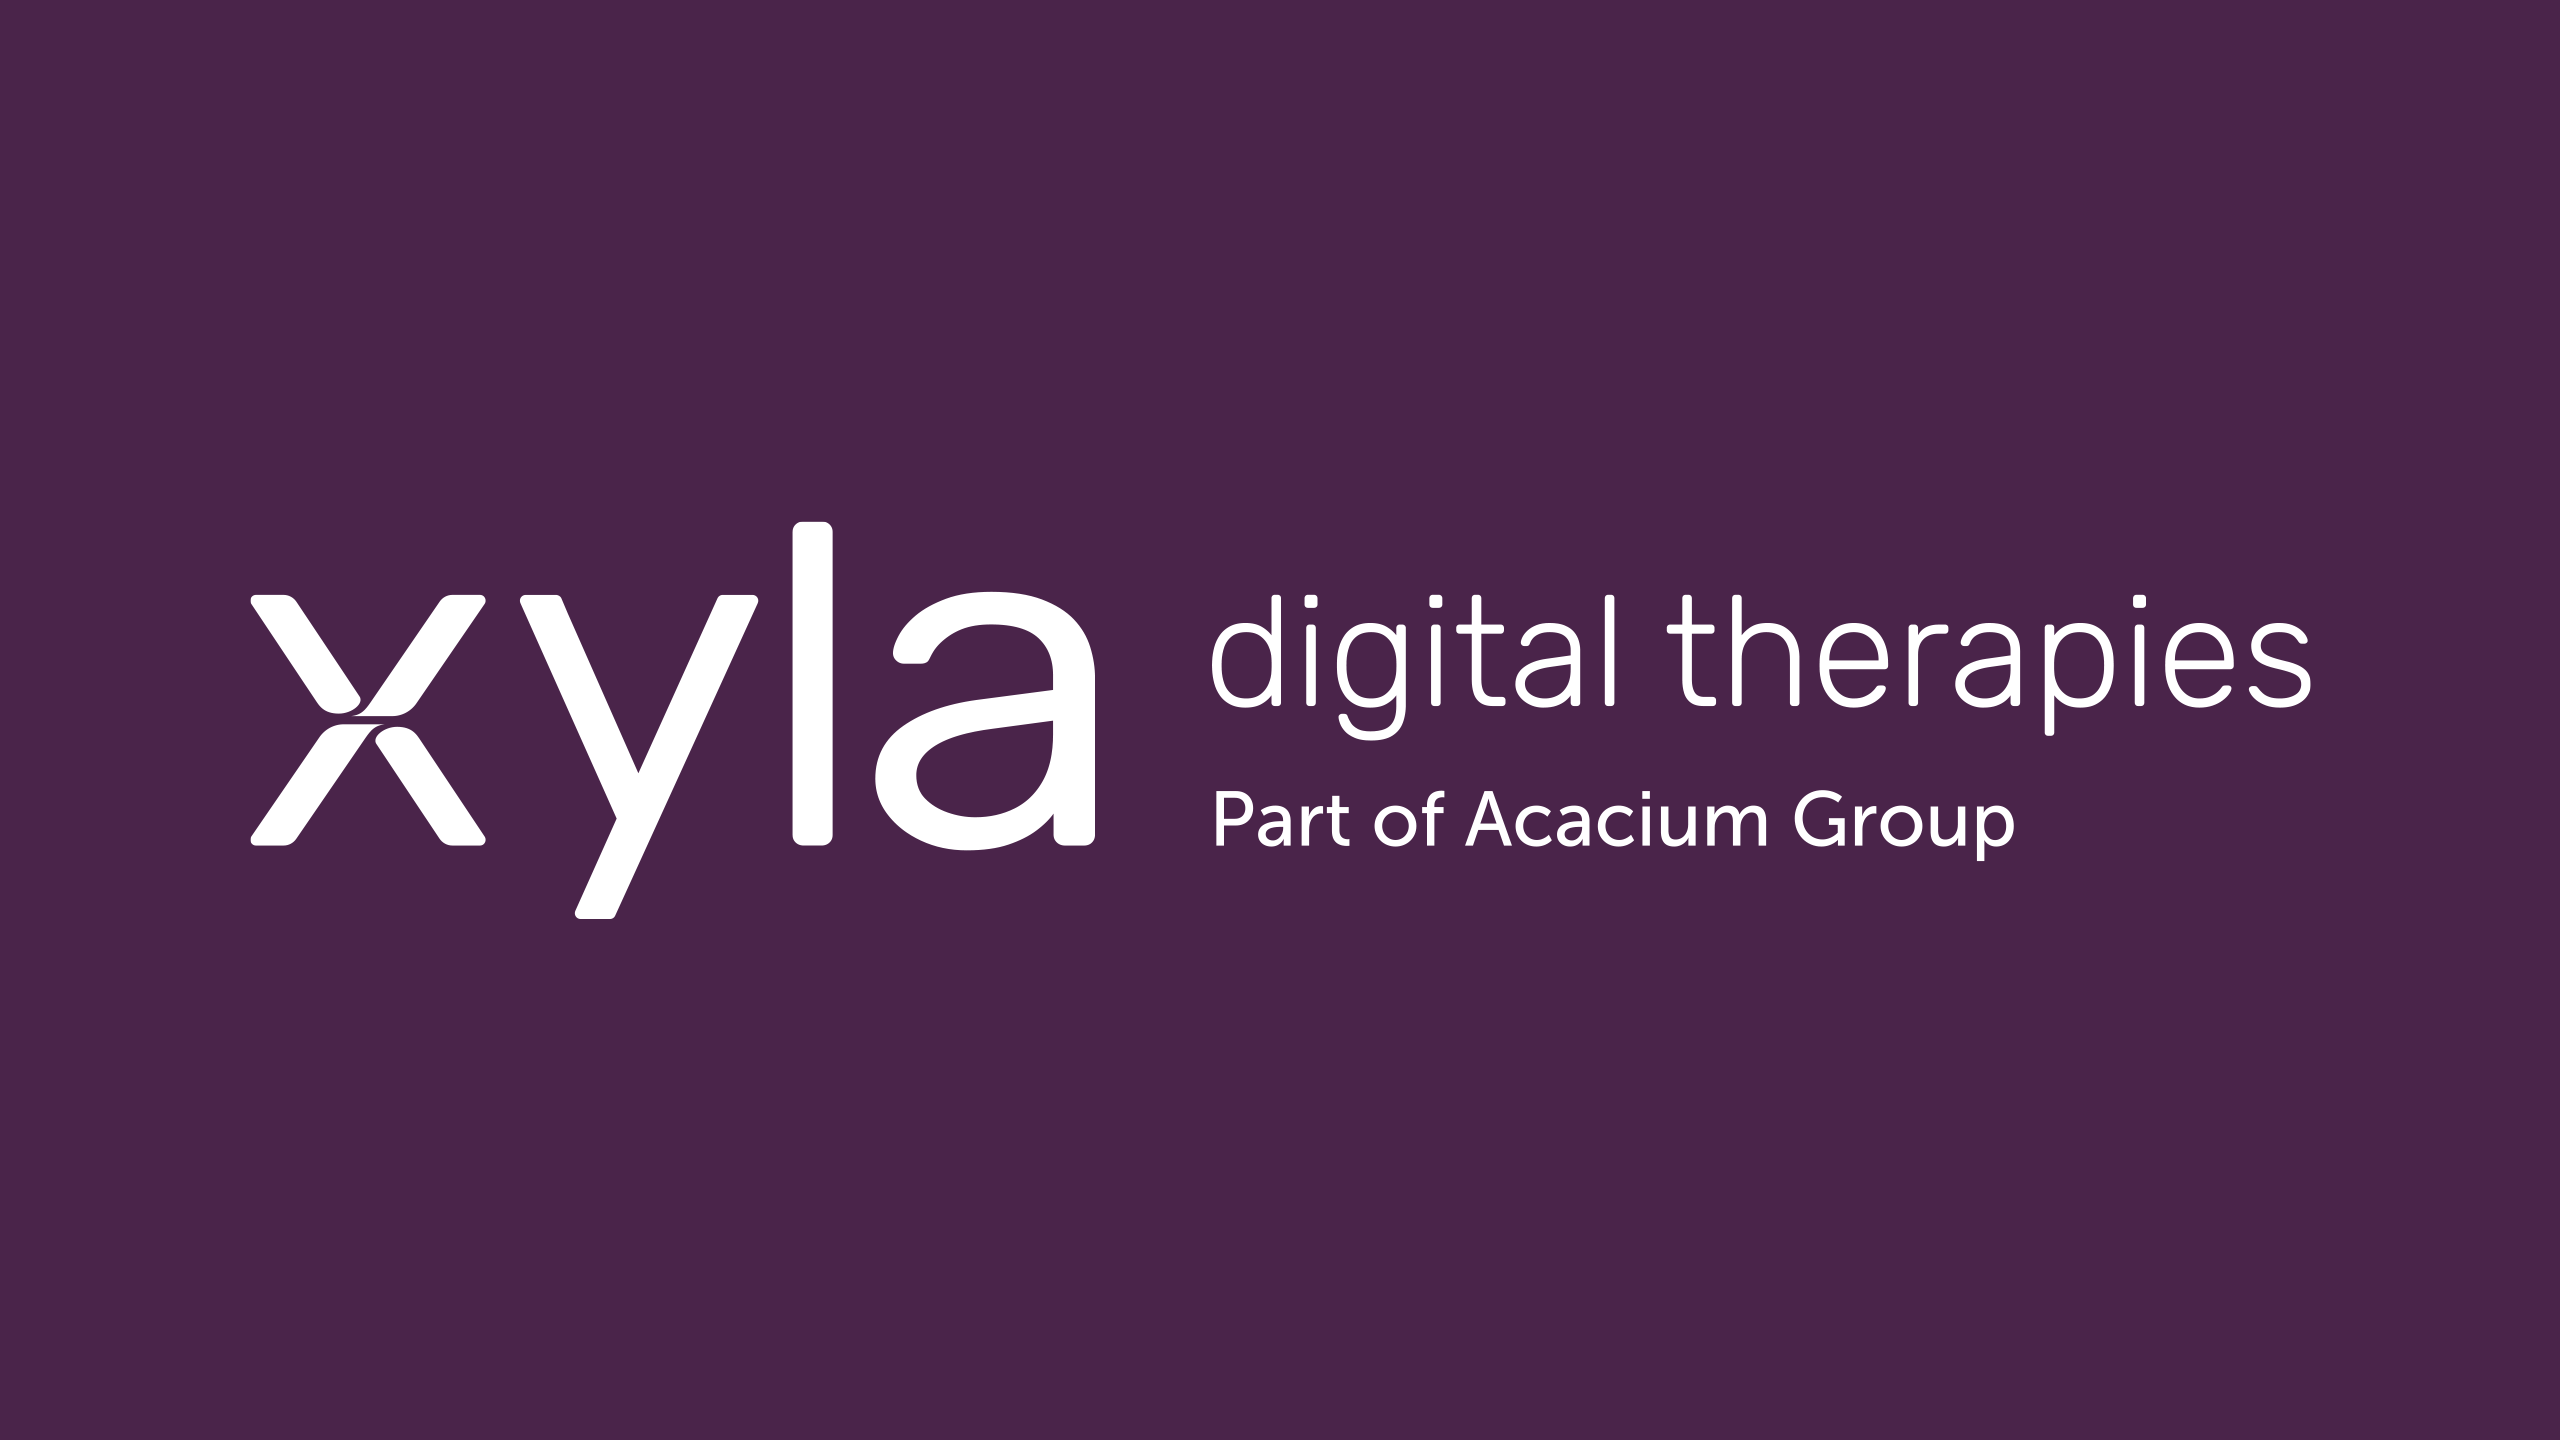 Xyla Digital Therapies